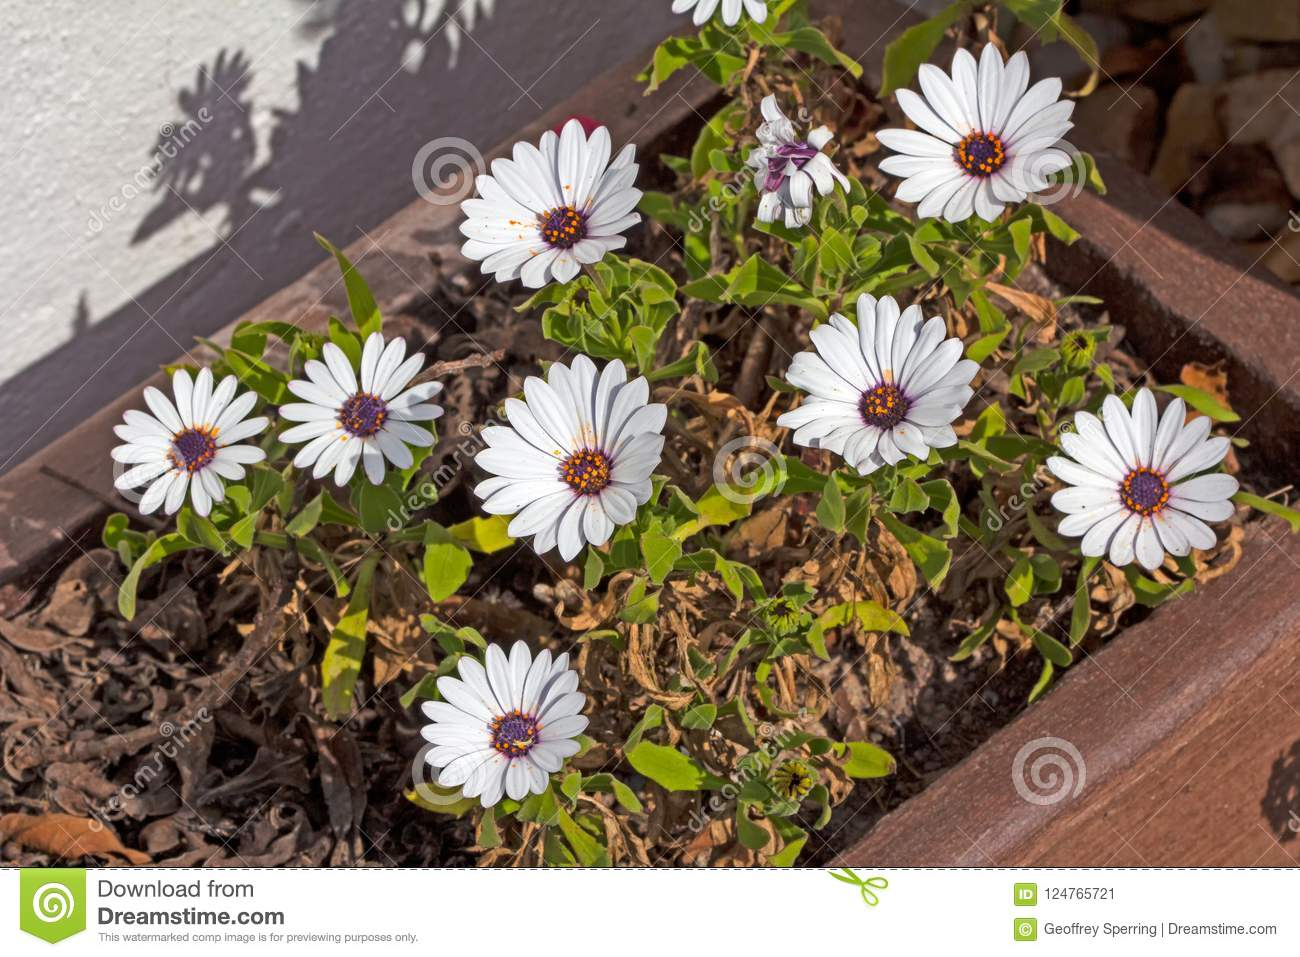 White Reenblommetjie Daisies Growing In Garden Stock Image - Image ...